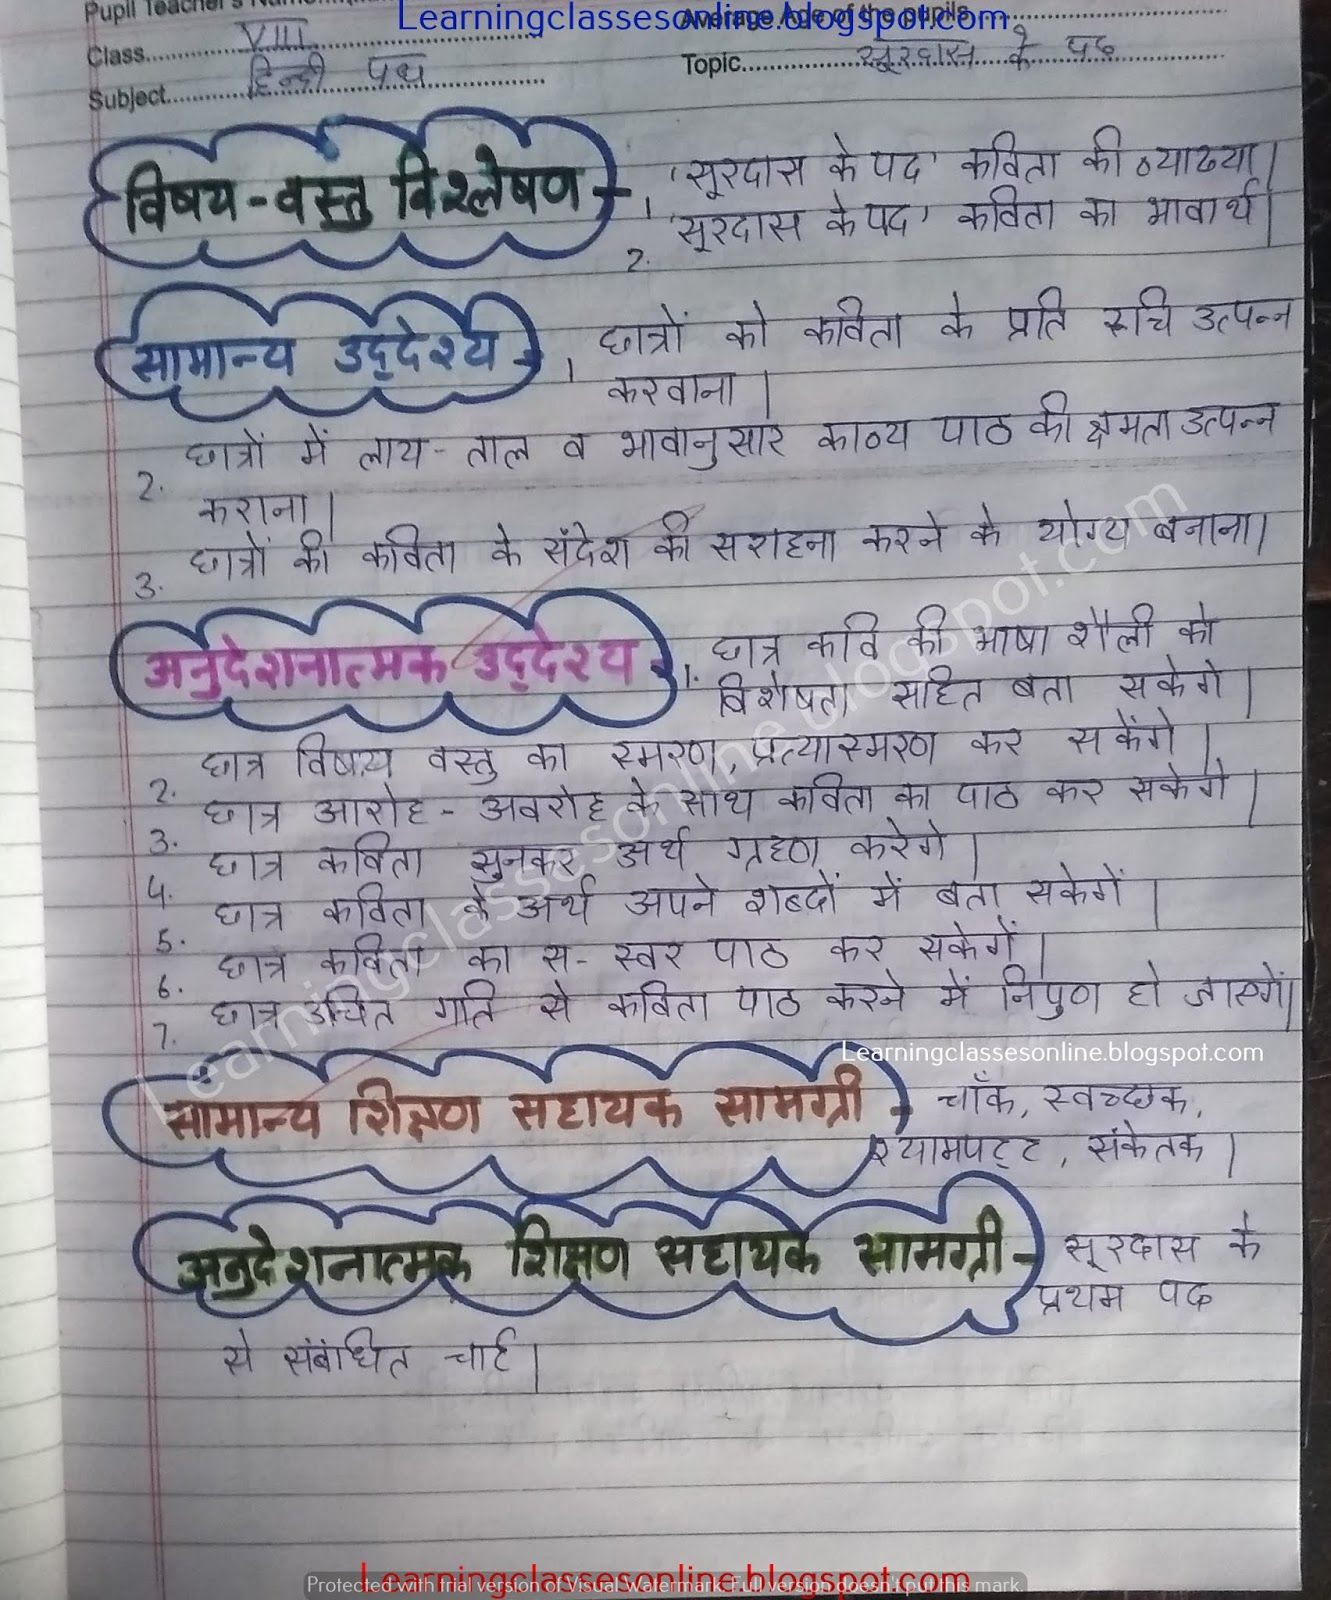 Lesson Plan In Hindi On Surdas Ke Pad For Class 8th Teachers And B Ed Deled Btc Students Lesson Plan In Hindi Lesson Plan In Hindi How To Plan Lesson [ 1600 x 1331 Pixel ]